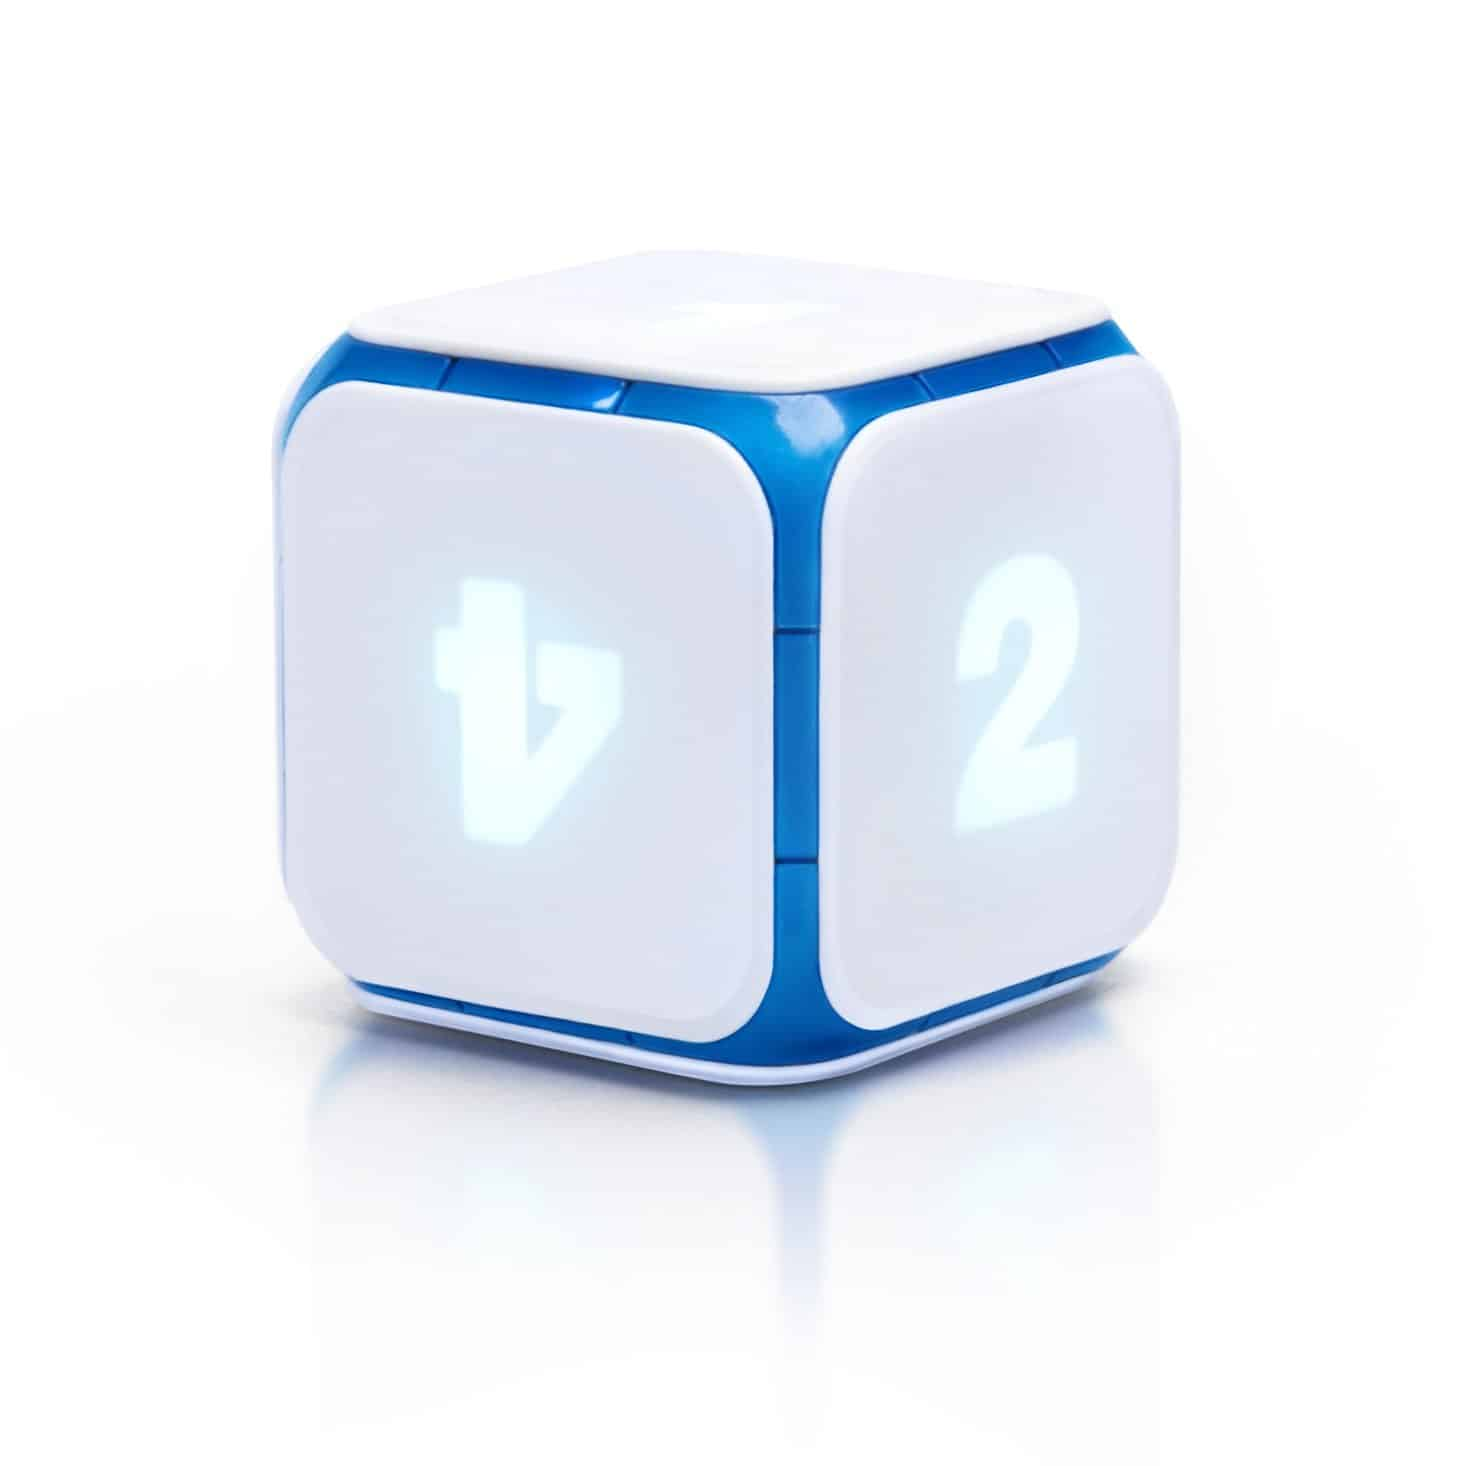 Pizzeria Pronto Stovetop Pizza Oven Dice Bluetooth Gaming Dice Noveltystreet